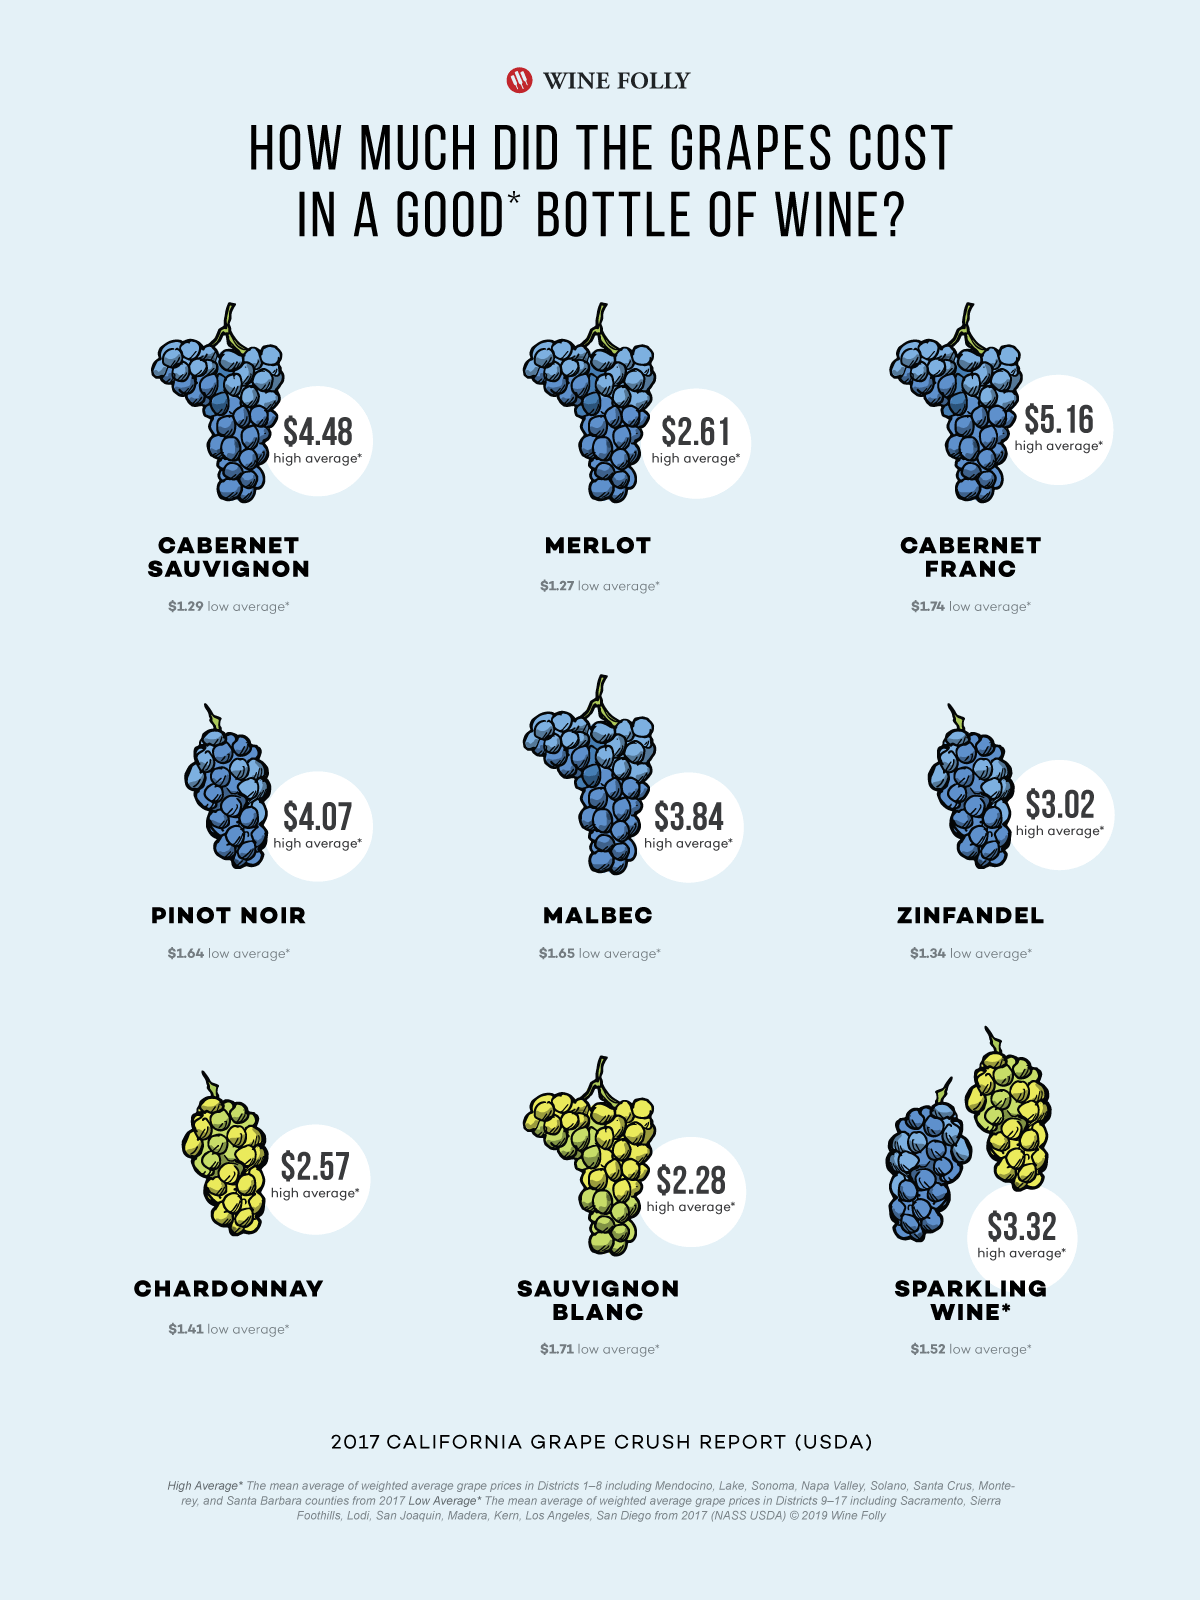 The actual cost of the grapes in a single bottle of wine - Infographic  by Wine Folly